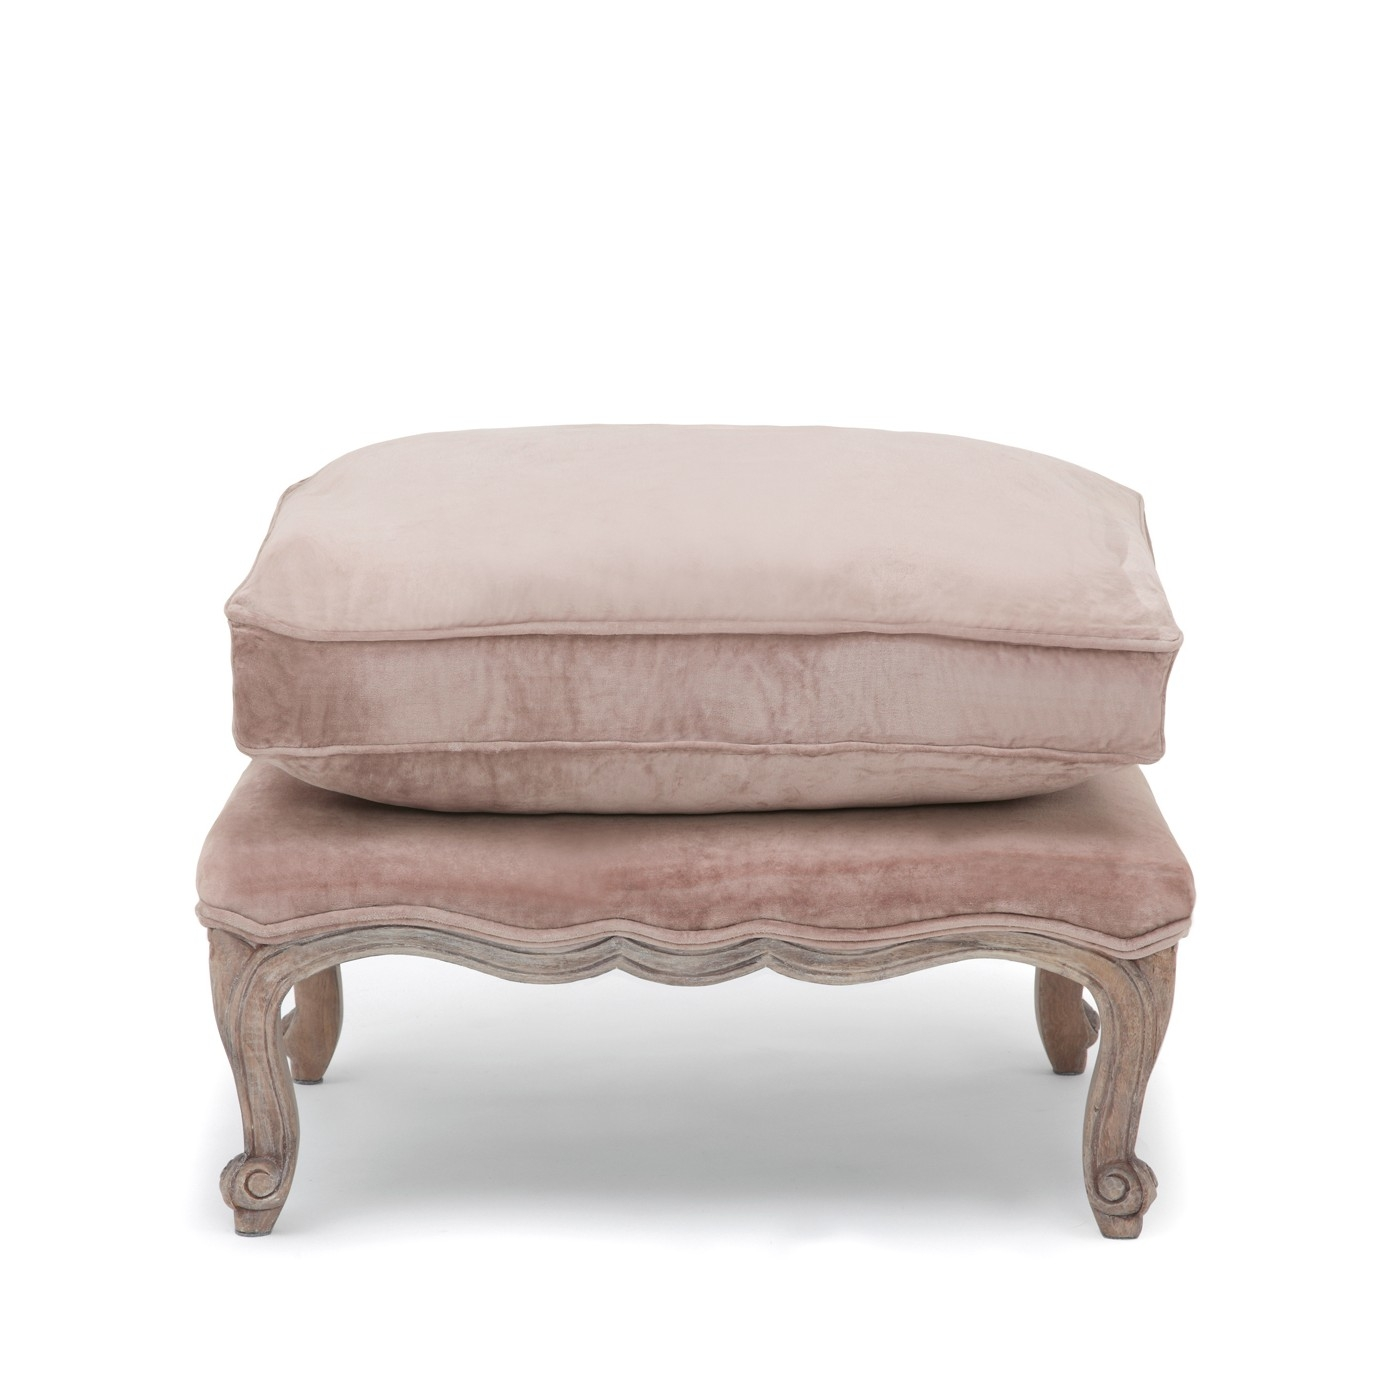 Filou French Footstool Mink Velvet Within Home Intended For Velvet Footstool (Image 9 of 15)